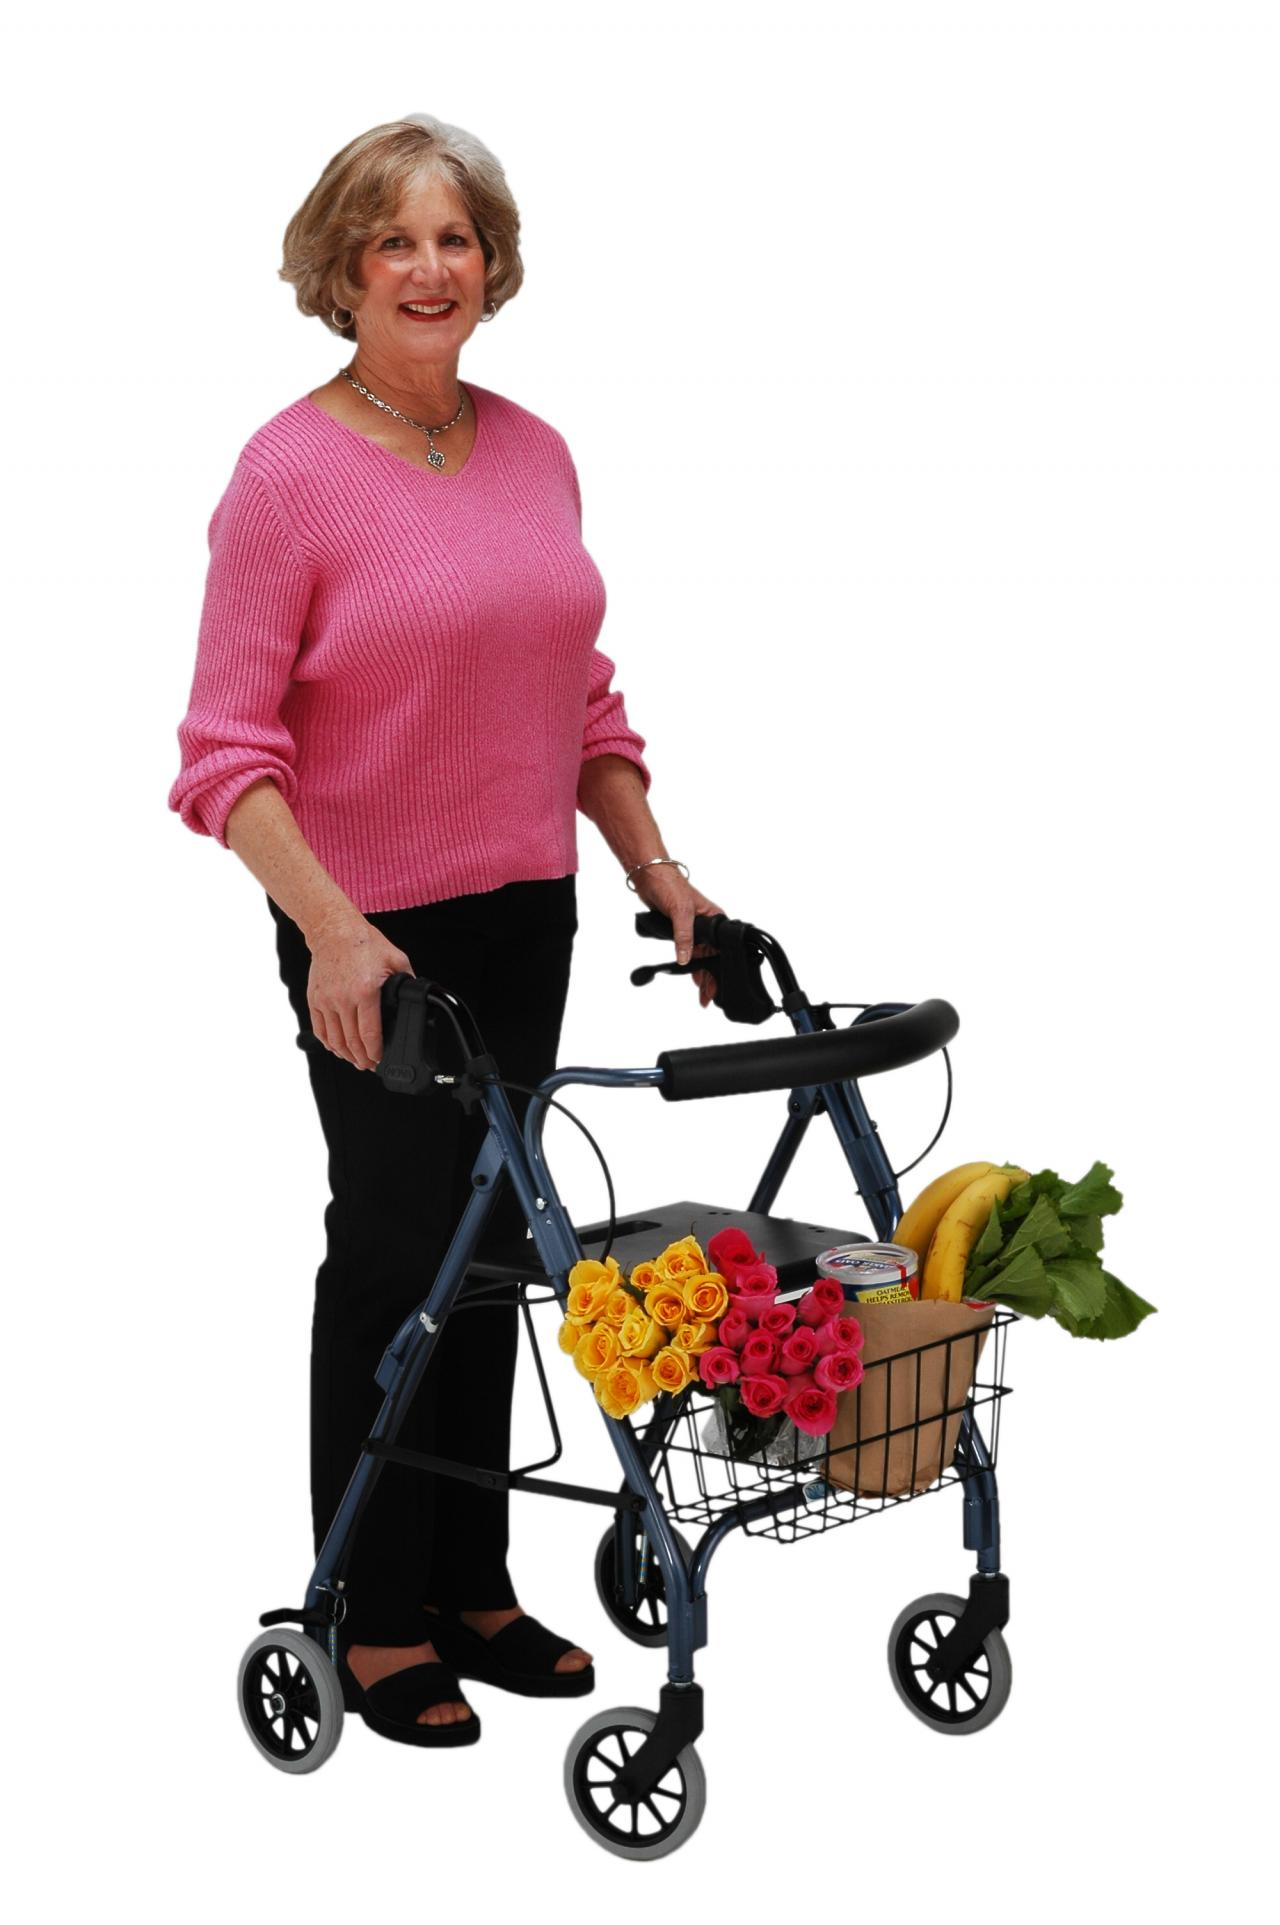 power lift chair repair plastic adirondack chairs access, mobility, & rental ctr - nova daily living aids 336.608.8810...we sell, deliver ...